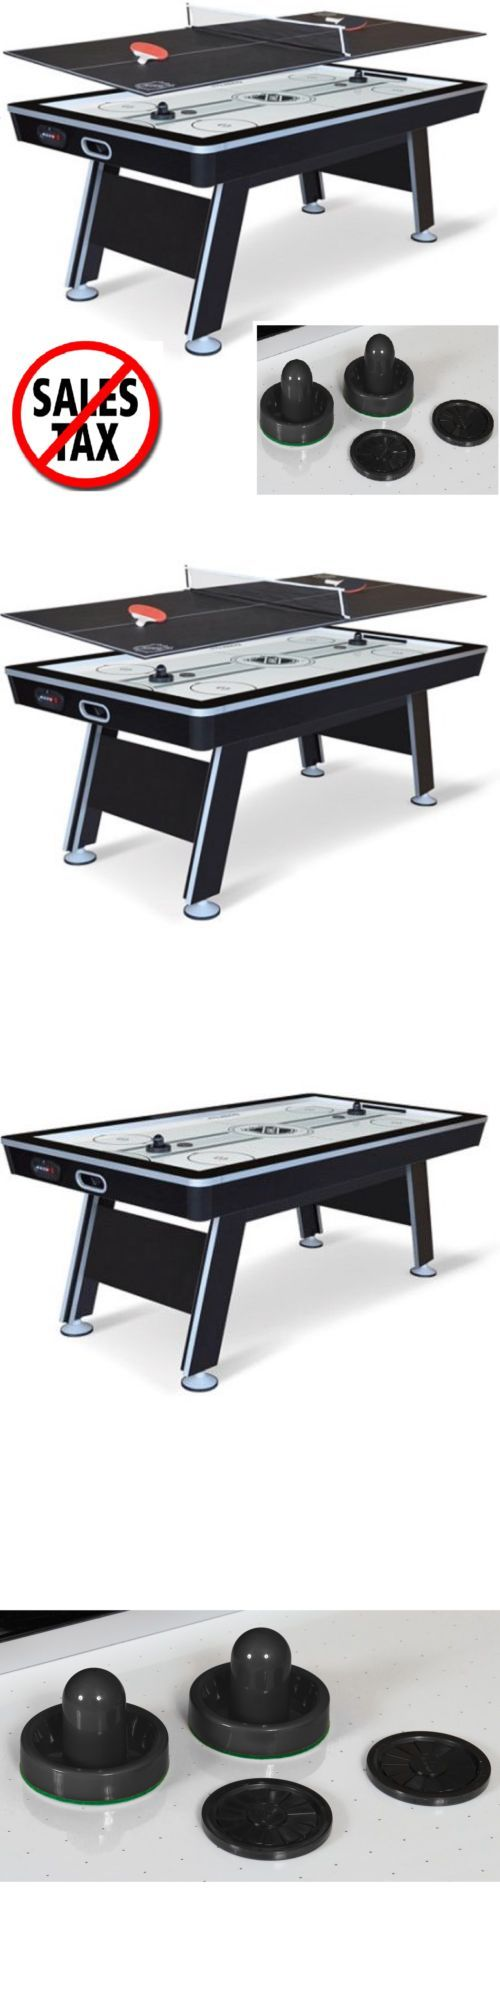 Air Hockey 36275: Air Hockey Table Ping Pong Tennis Top Indoor Games Sports Activity Play 80 1D -> BUY IT NOW ONLY: $359.99 on eBay!